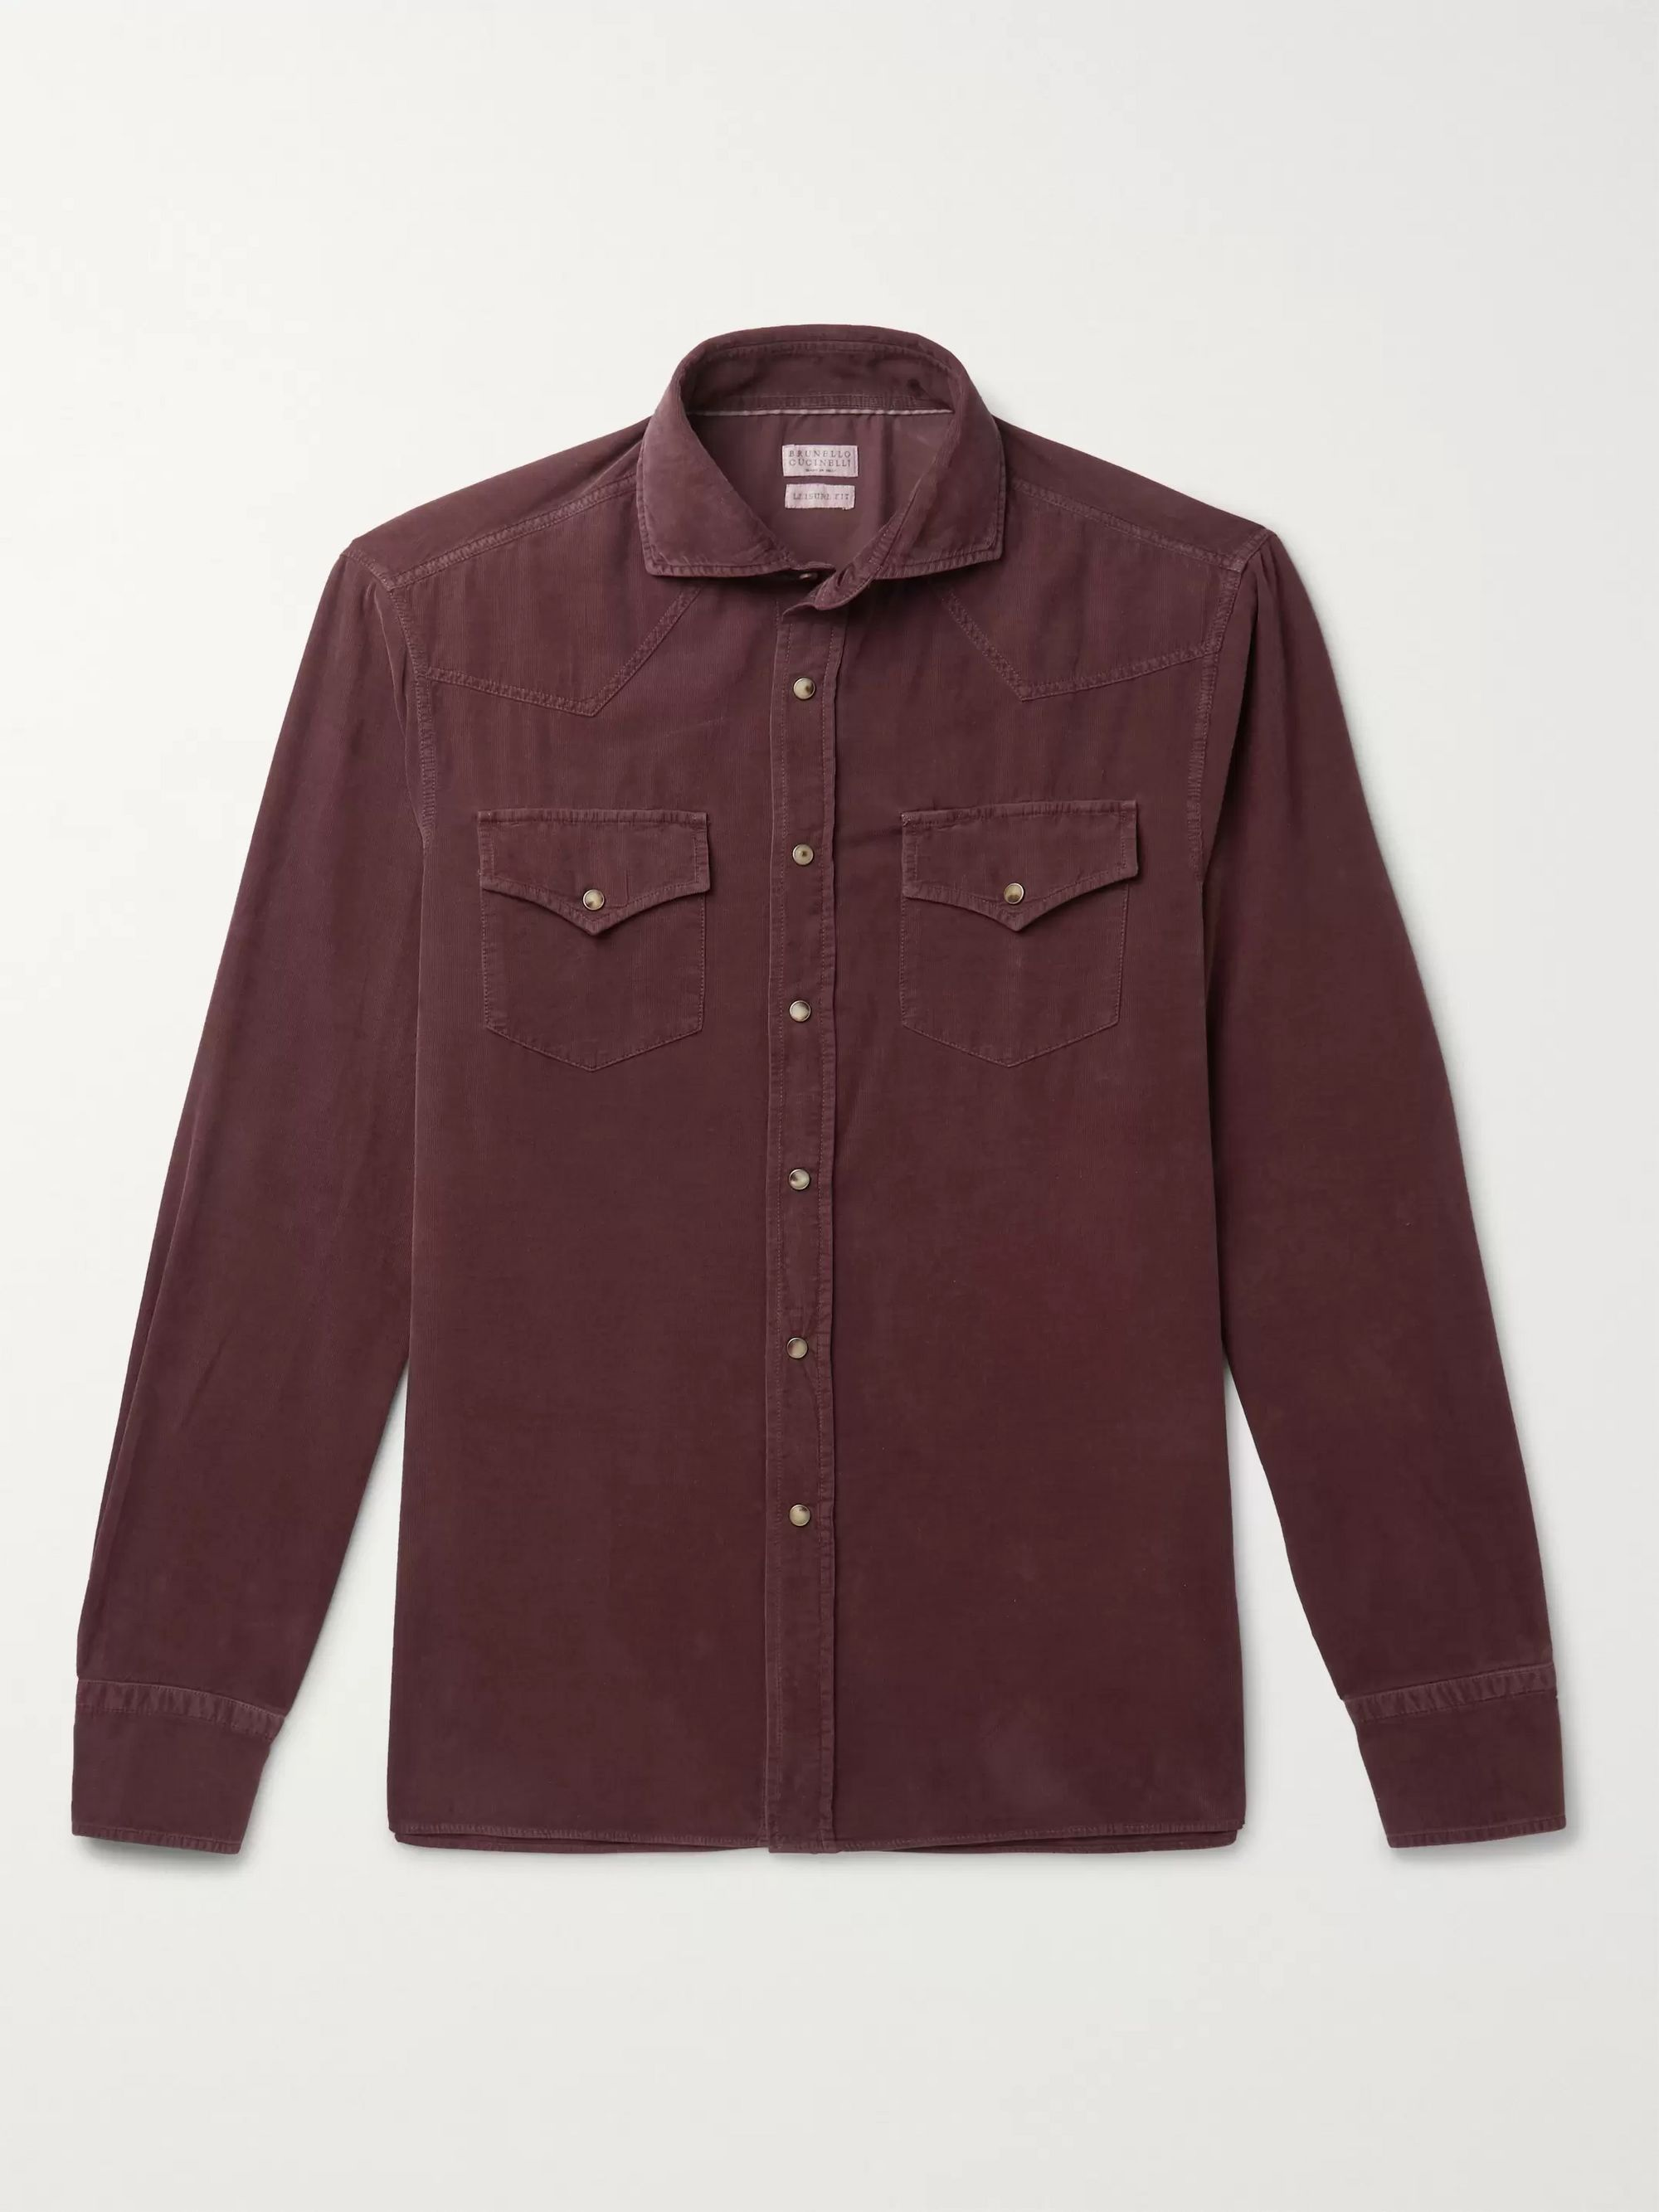 Brunello Cucinelli Cotton-Corduroy Western Shirt